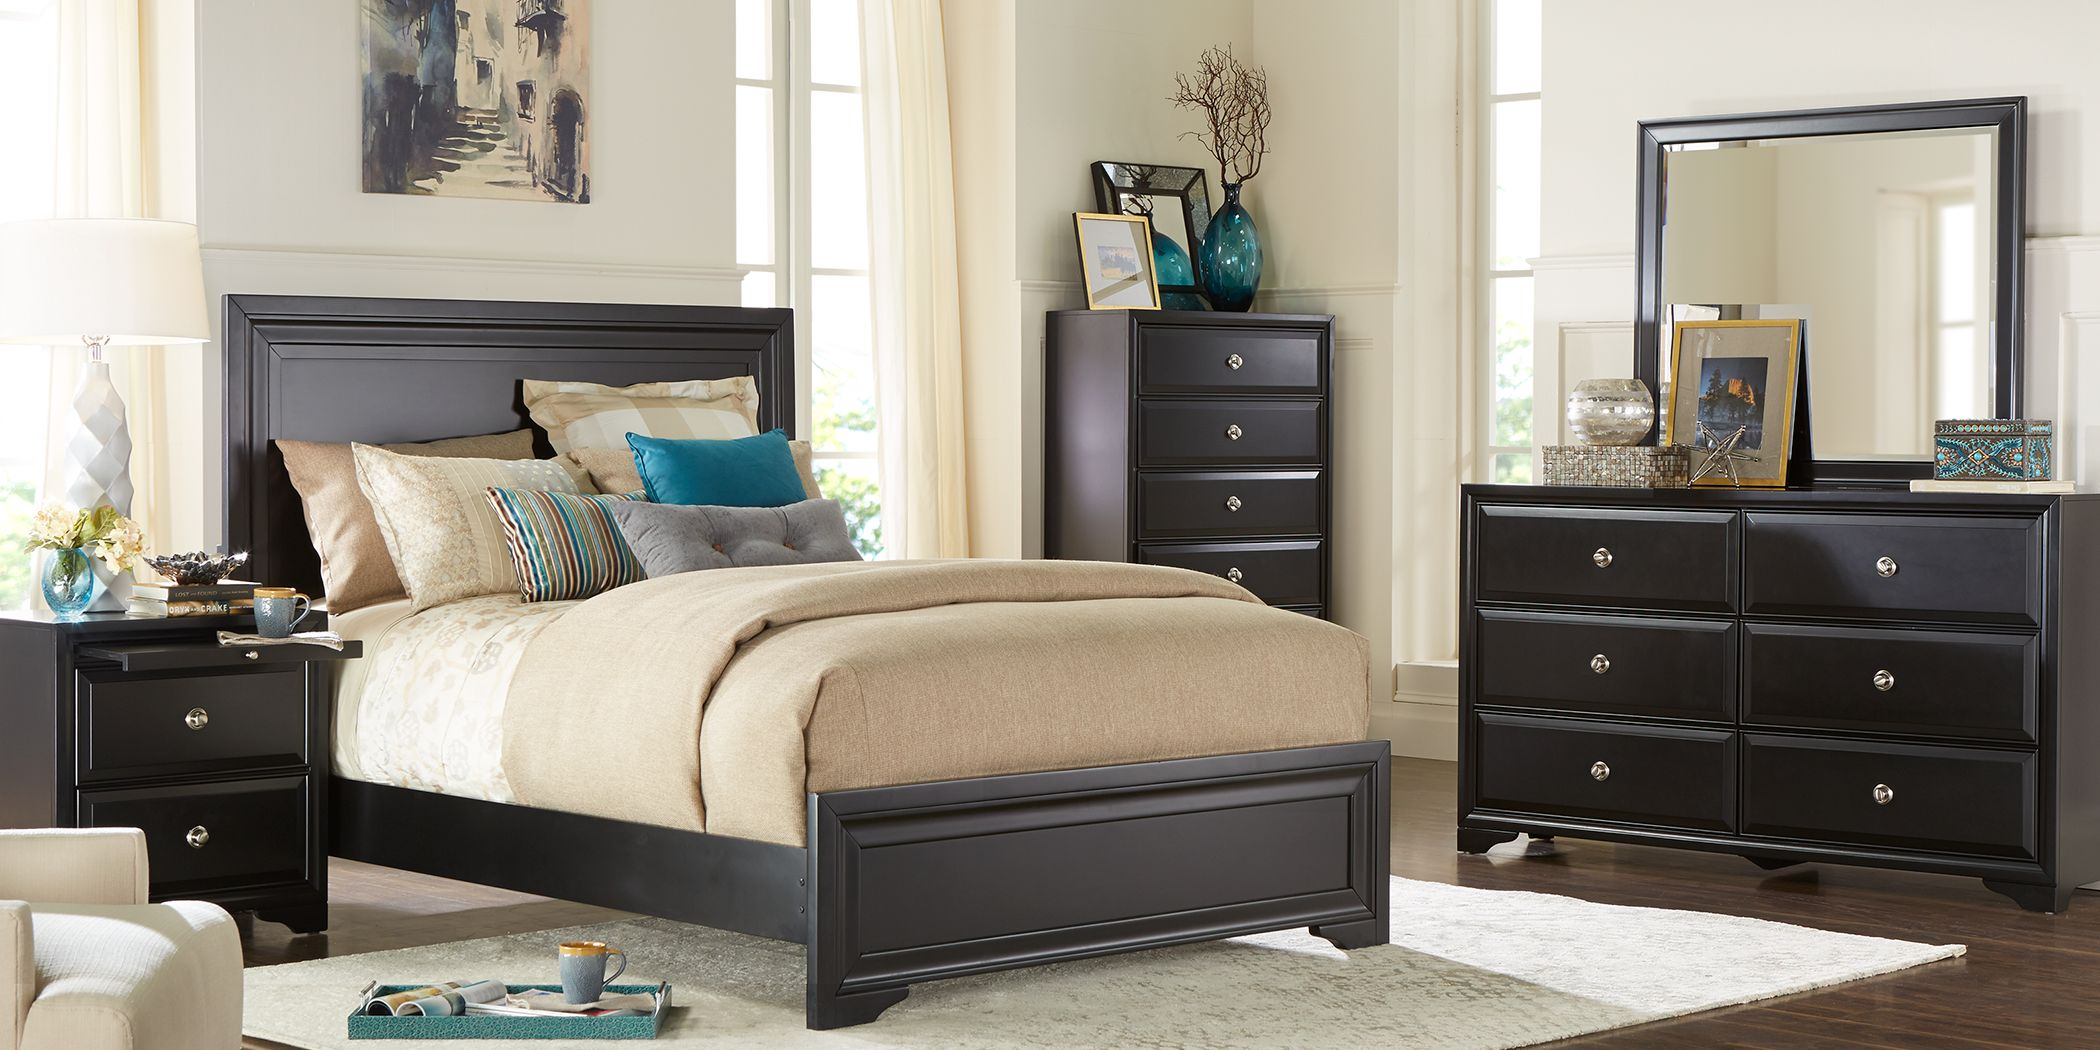 Discount Queen Bedroom Sets